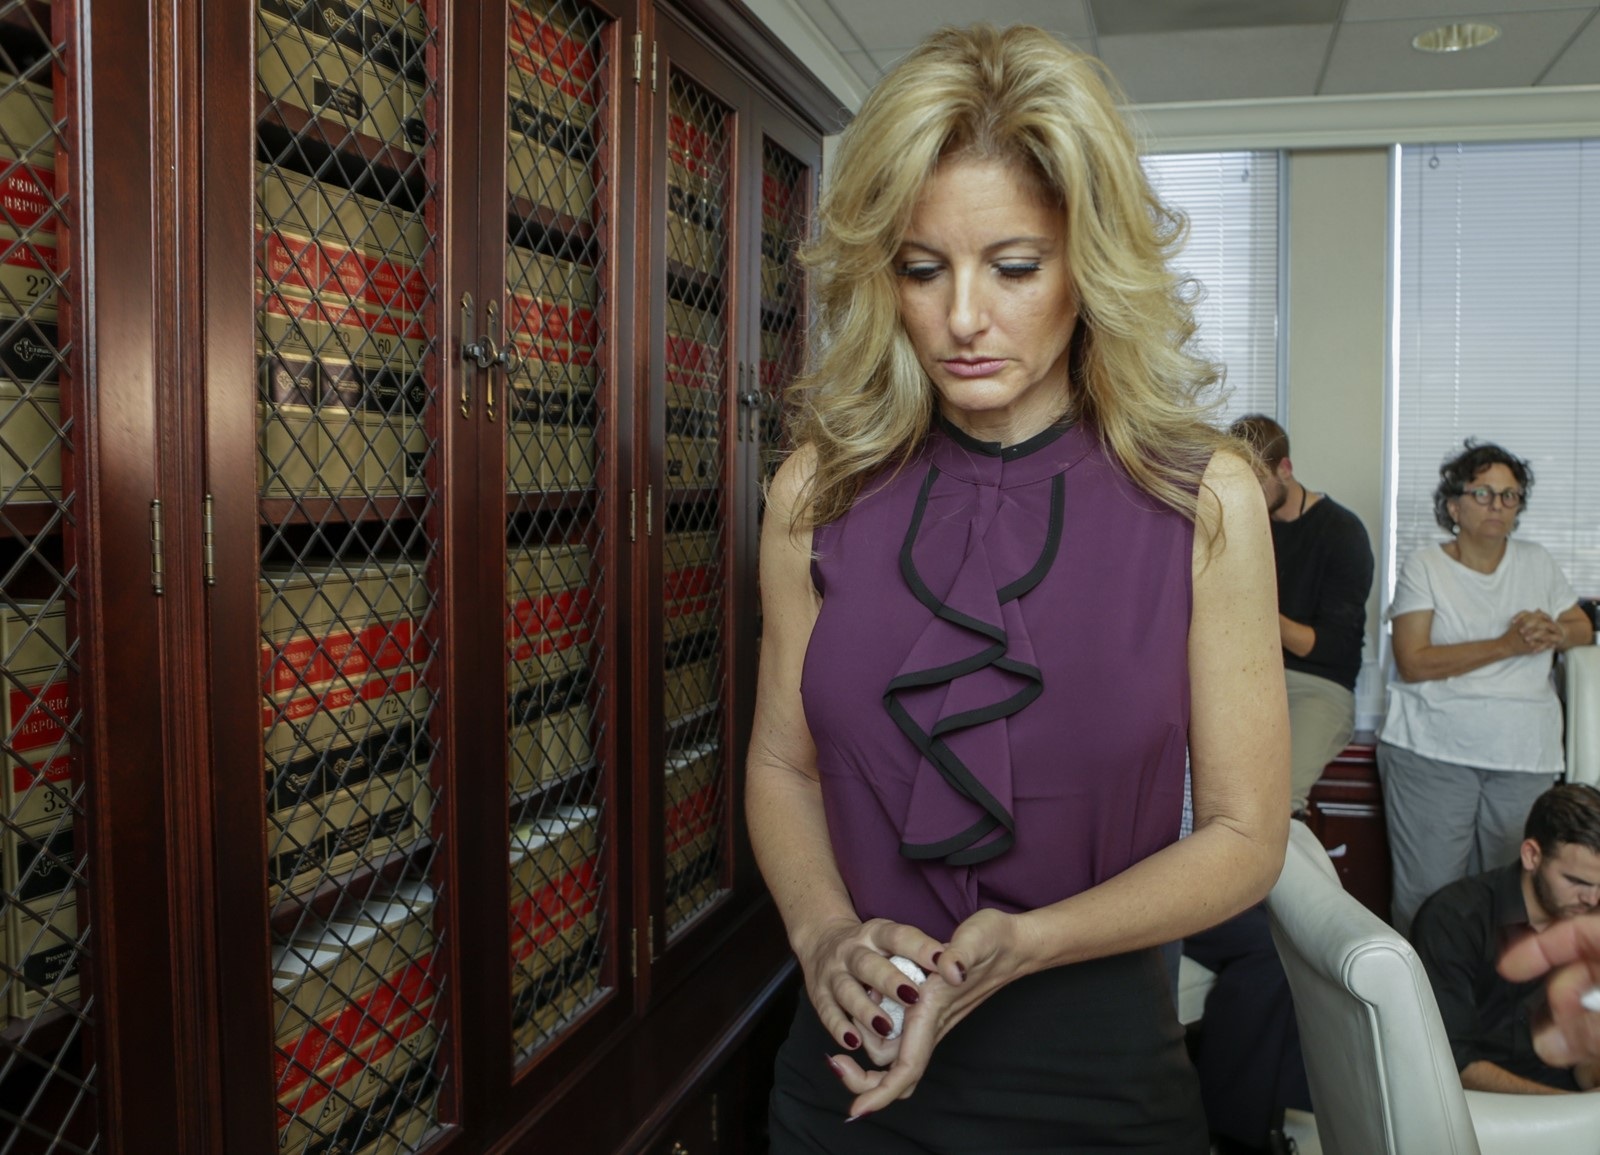 Summer Zervos is suing in response to President Trump's denials that he tried to force himself on her. — Photograph: Irfan Khan/Los Angeles Times.